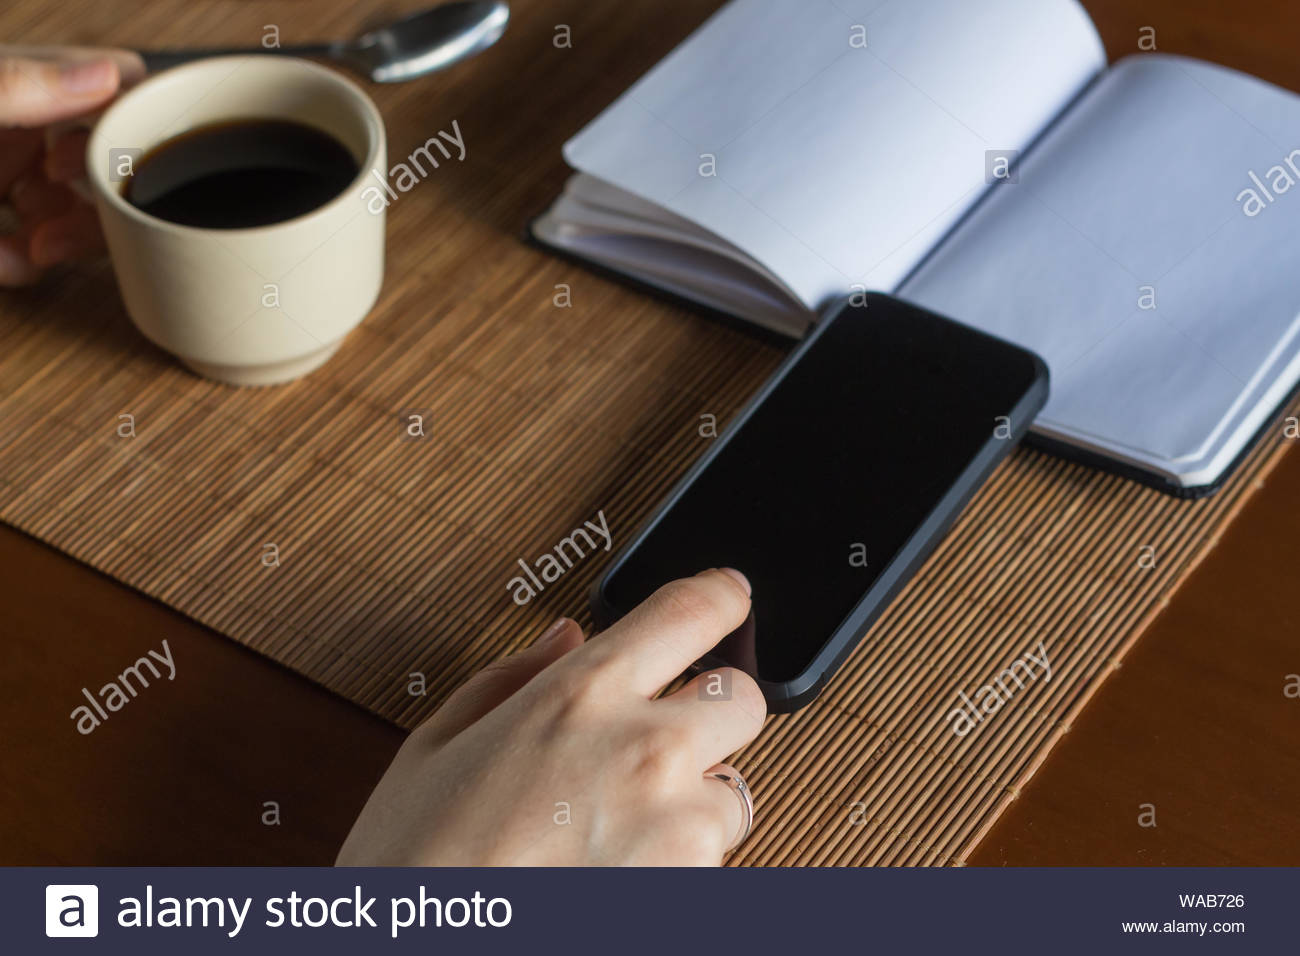 A woman with her smart phone having a cup of coffee and planning business with a notebook Stock Photo